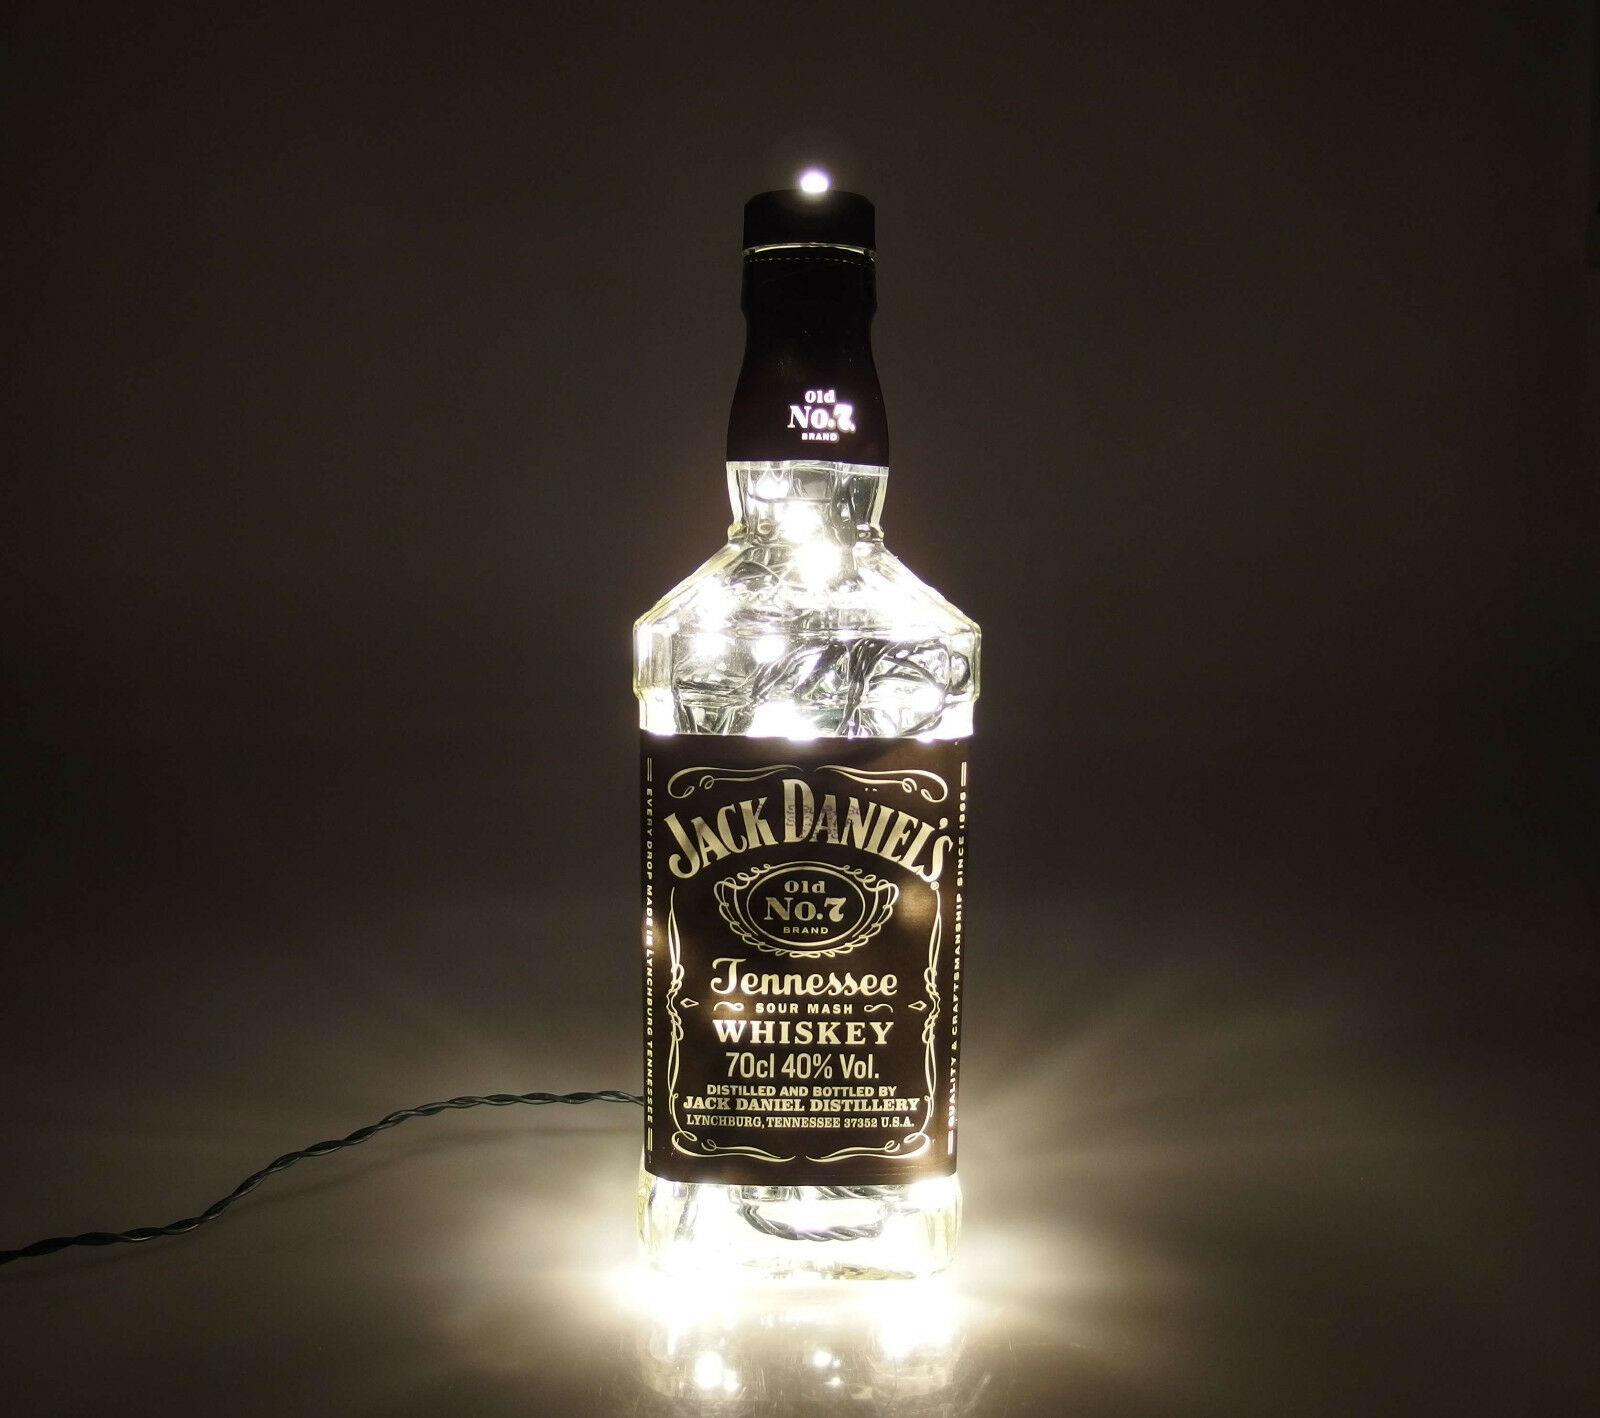 jack daniels flaschen lampe mit 80 leds 220v warm und. Black Bedroom Furniture Sets. Home Design Ideas